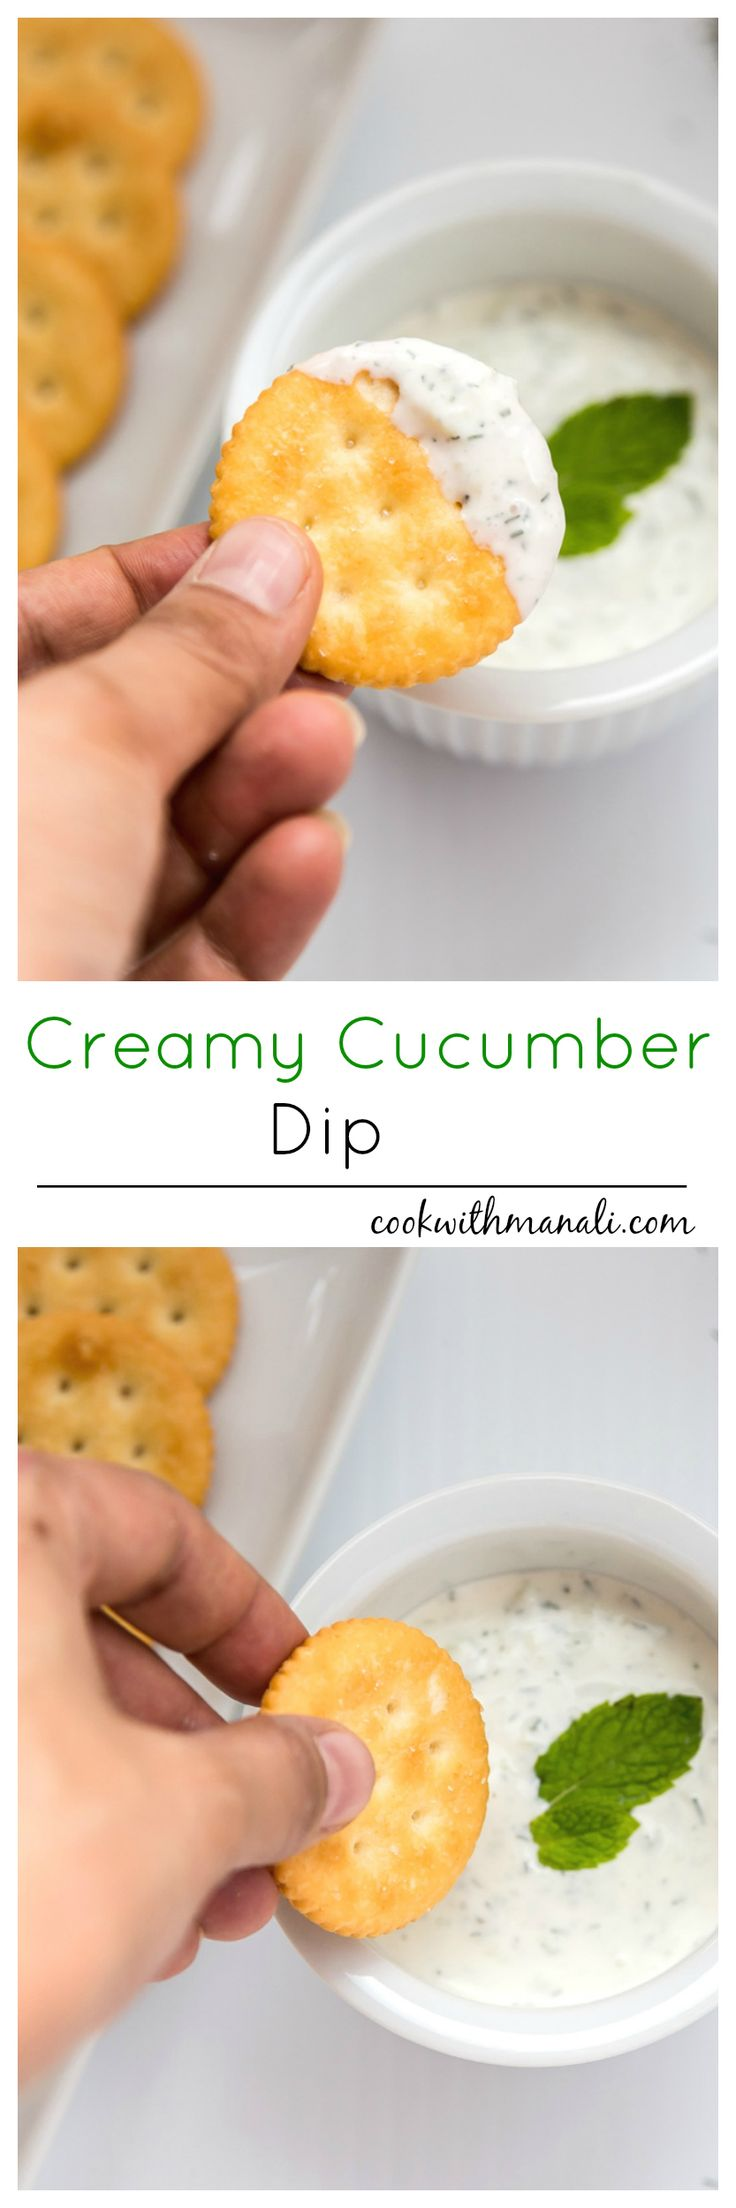 Creamy Cucumber Dip is perfect to dip pretzels, chips, crackers and more. It's also fantastic with wraps, quesadillas and burritos!